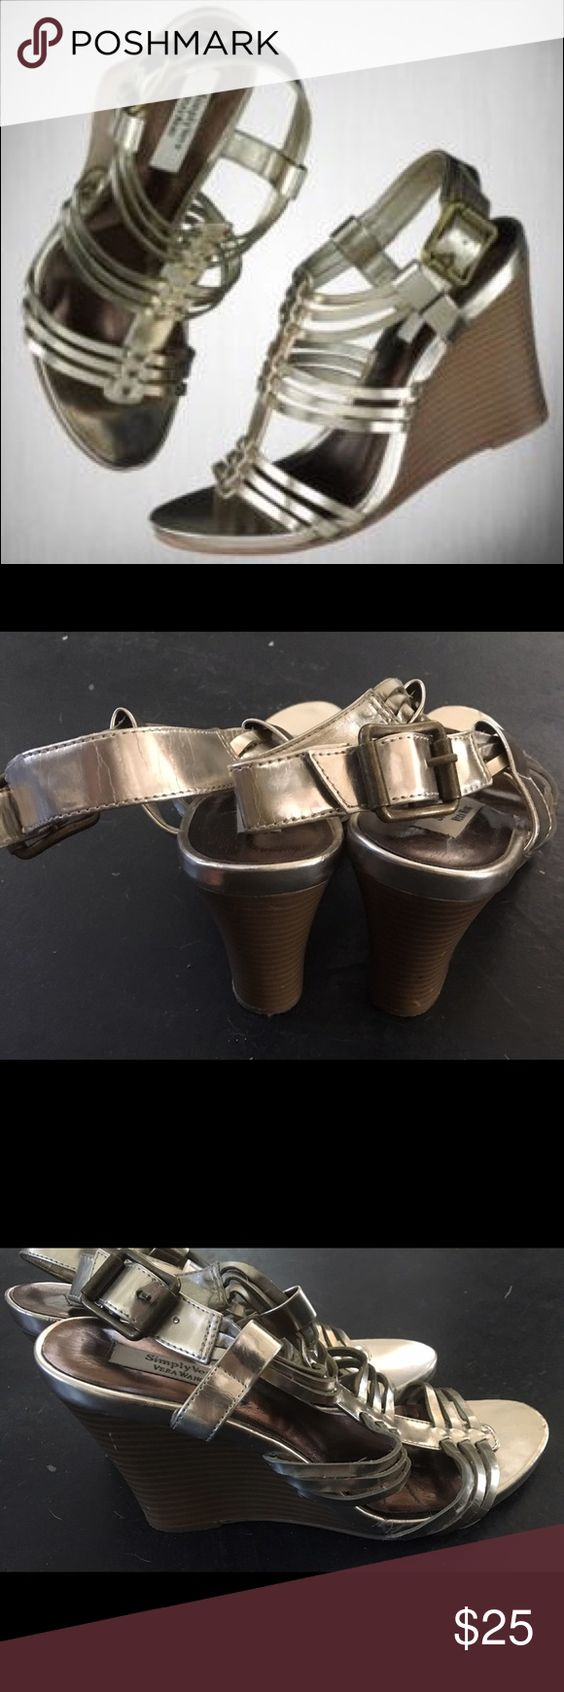 💕💖VERA WANG METALLIC GLADIATOR WEDGES💖💕 Simply Vera by Vera wang silver metallic wedges. Stacked wooden heel about 3 inches. Gladiator style with buckle at ankle. Great condition! Simply Vera Vera Wang Shoes Wedges